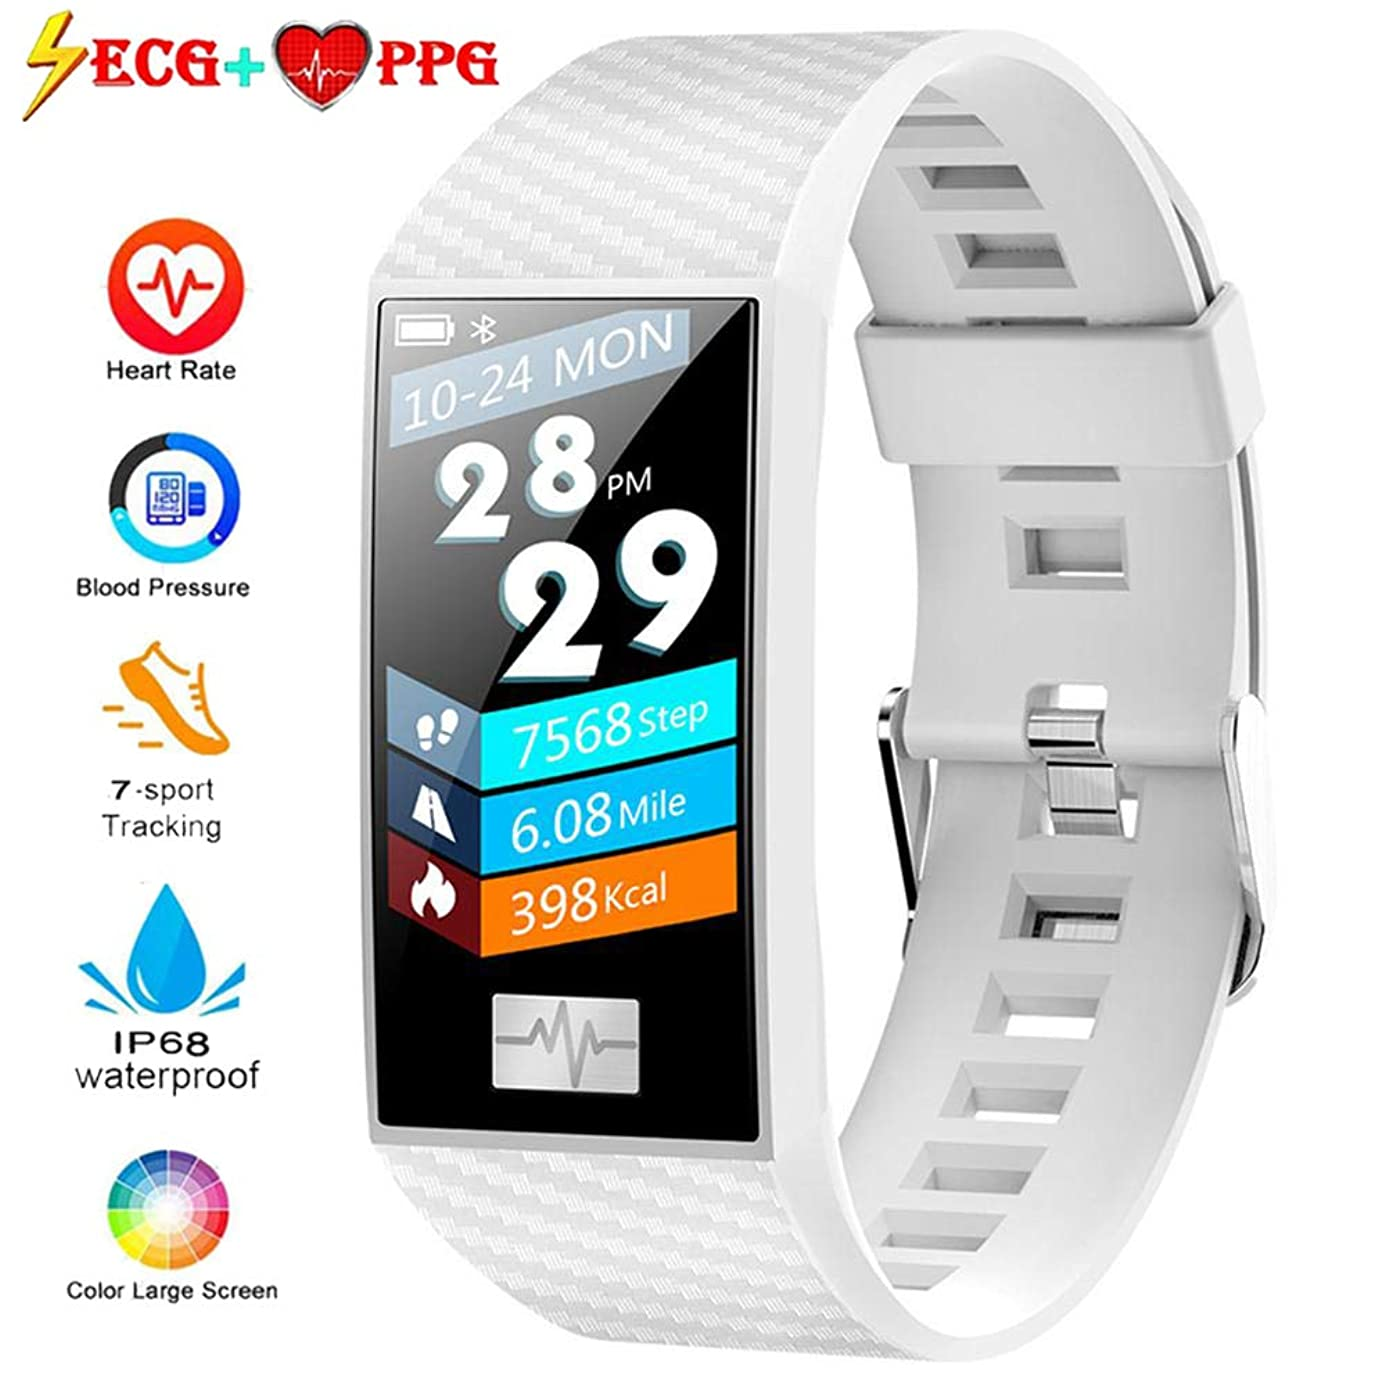 Lesgos ECG PPG Fitness Tracker, IP68 Waterproof Activity Tracker Watch [Support Swimming] with Heart Rate Blood Pressure Monitor, 1.14Inch Color Screen Bluetooth Sports Bracelet for Android and iOS